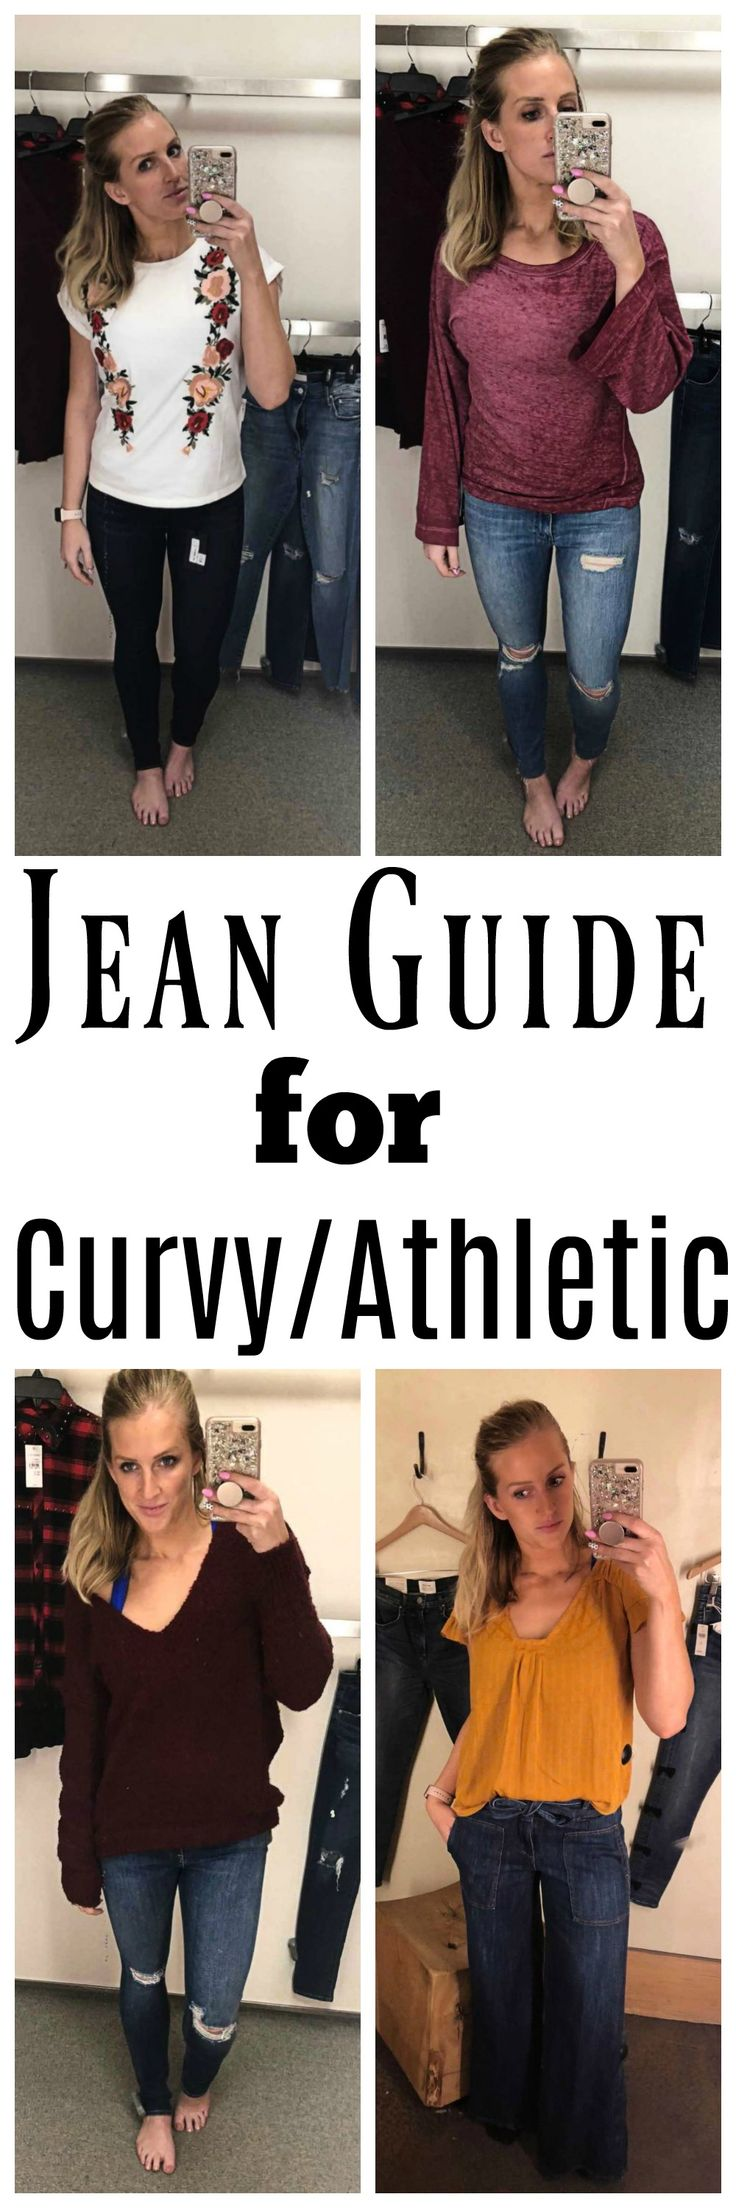 Jean Guide: The Best Jeans for Curvy Women